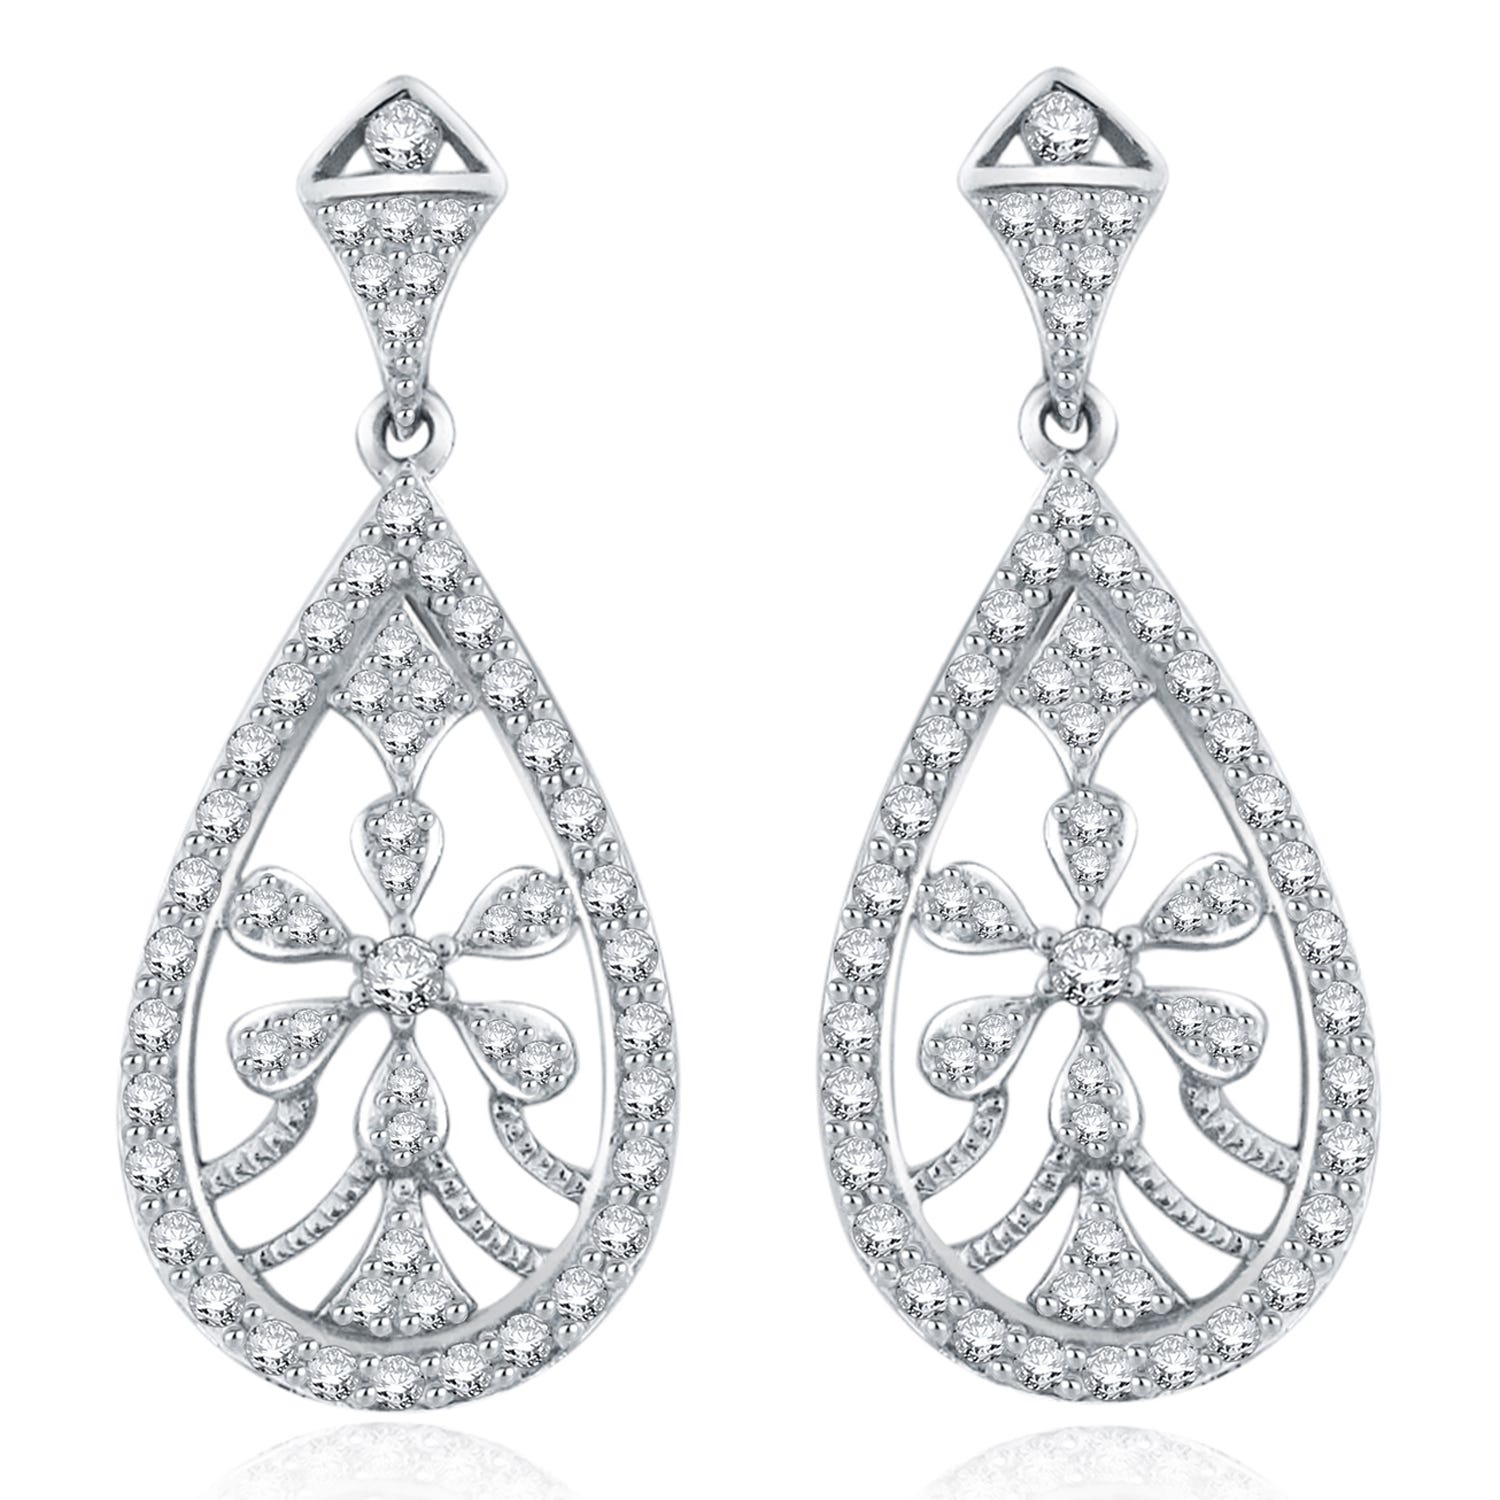 Diamond 1ctw. Flower Chandelier Fashion Earrings in 14k White Gold